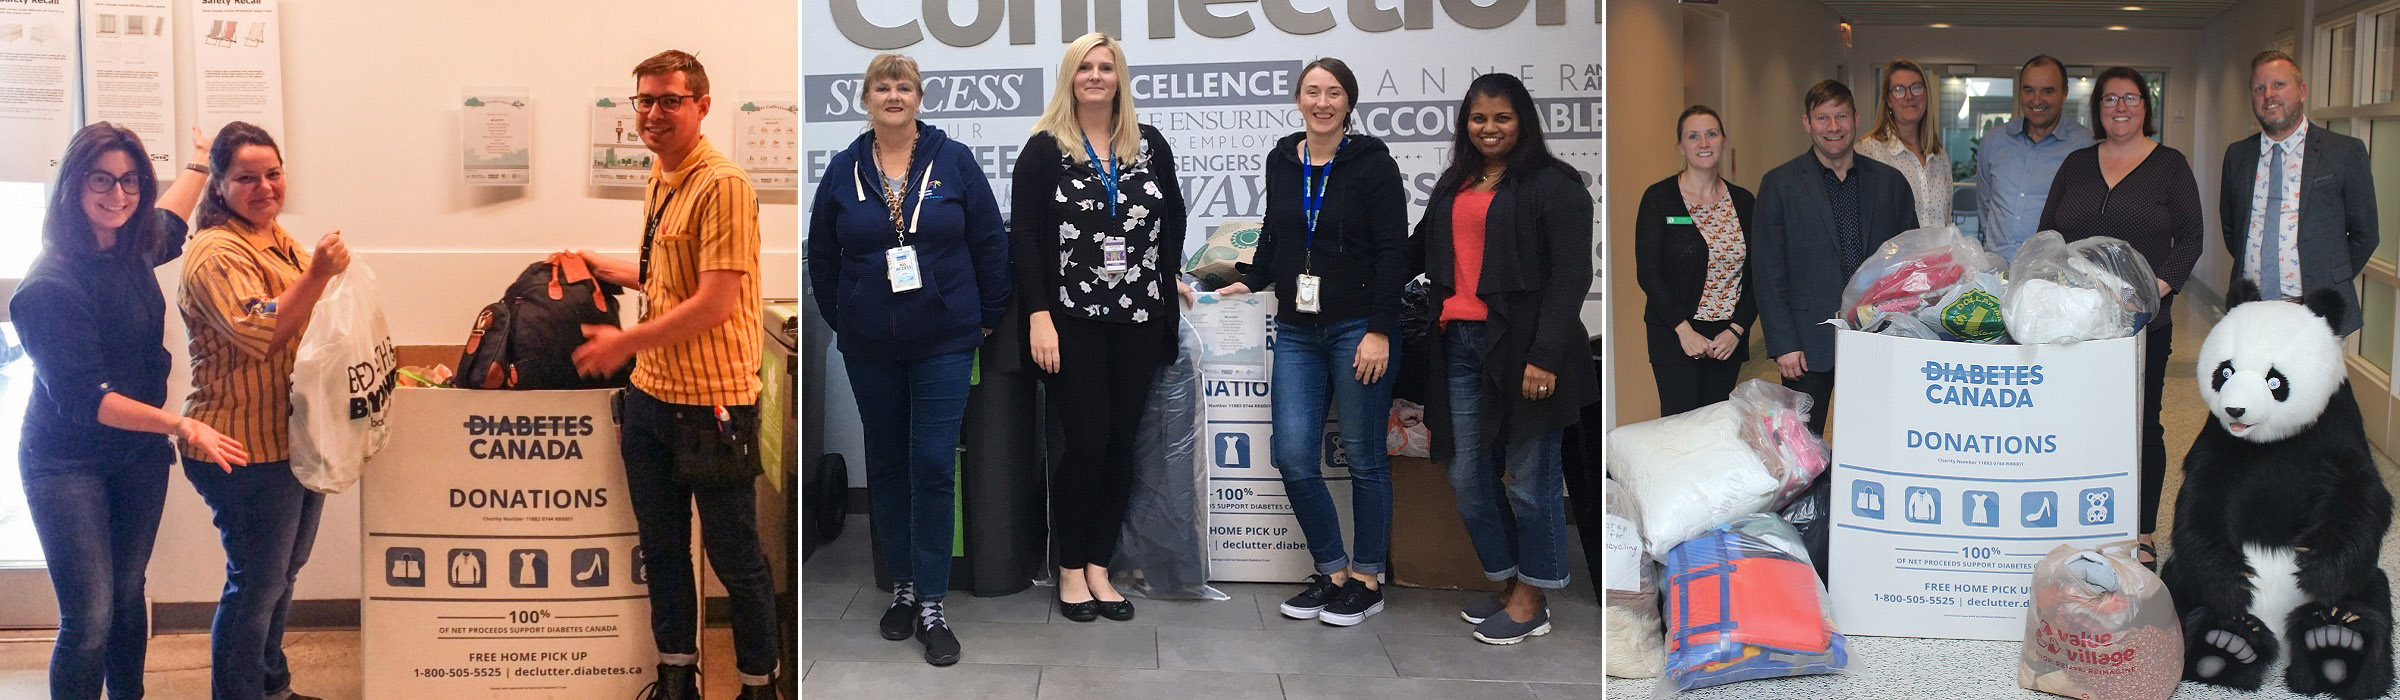 employees from GTA organizations participate in recycling collection drive